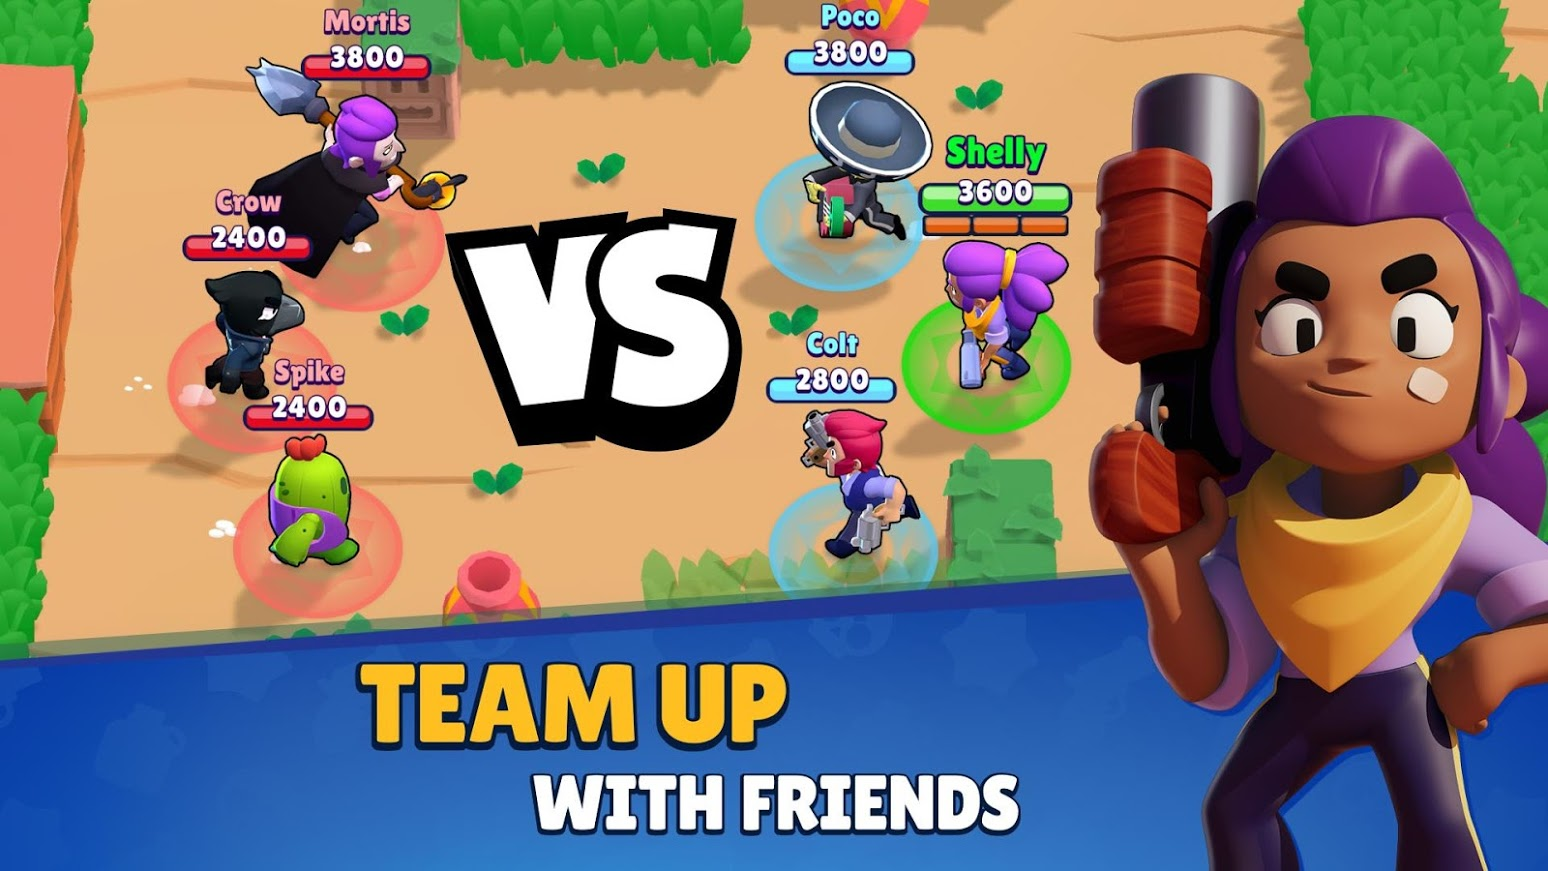 Brawl Stars busts loose on Android with app's global release